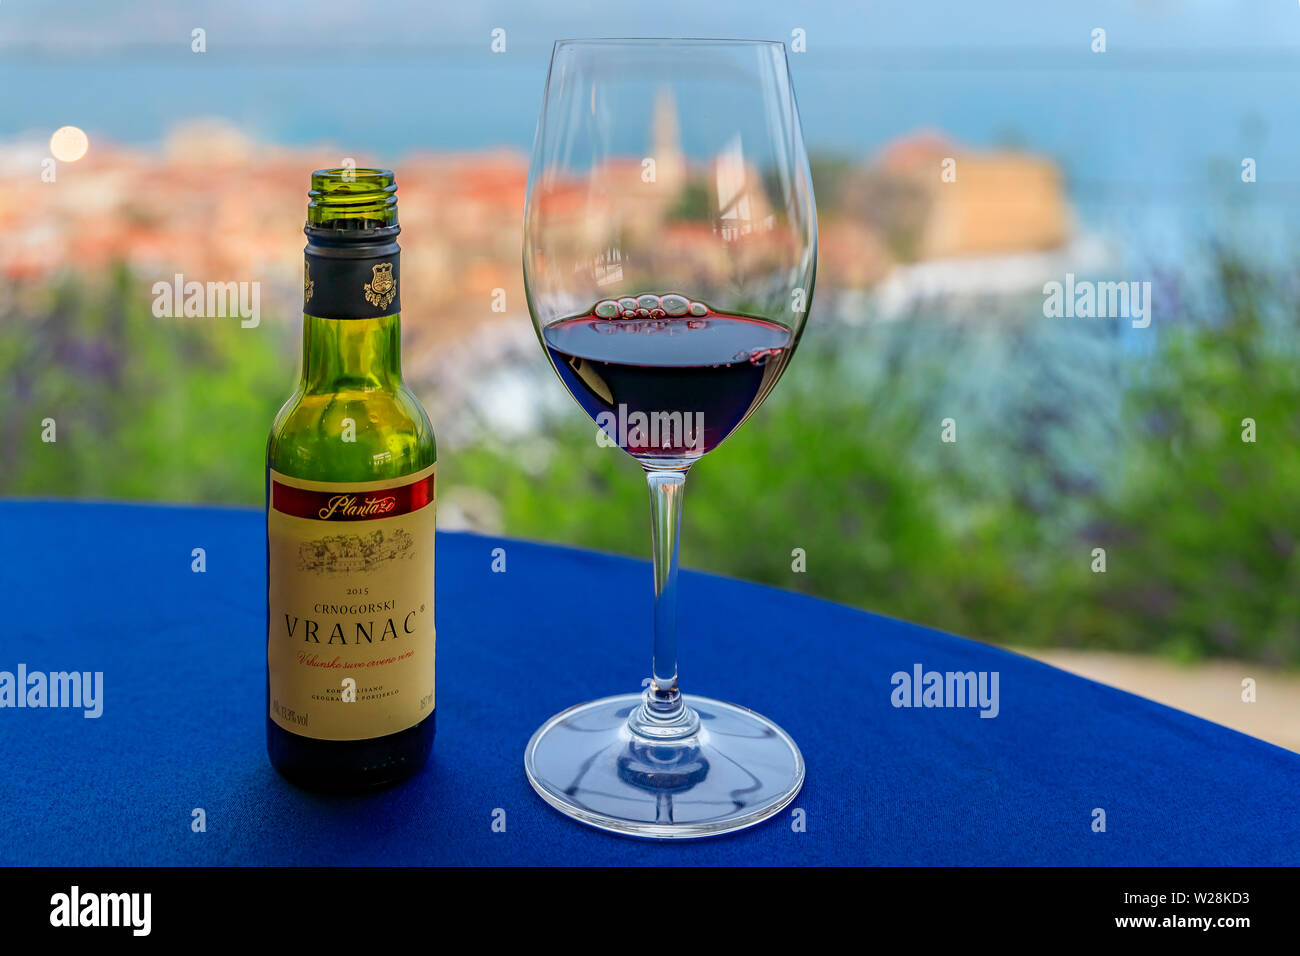 Budva, Montenegro - May 27, 2019: Glass and small bottle of local red wine Vranac at a restaurant with Old Town and Adriatic Sea blurred in background Stock Photo